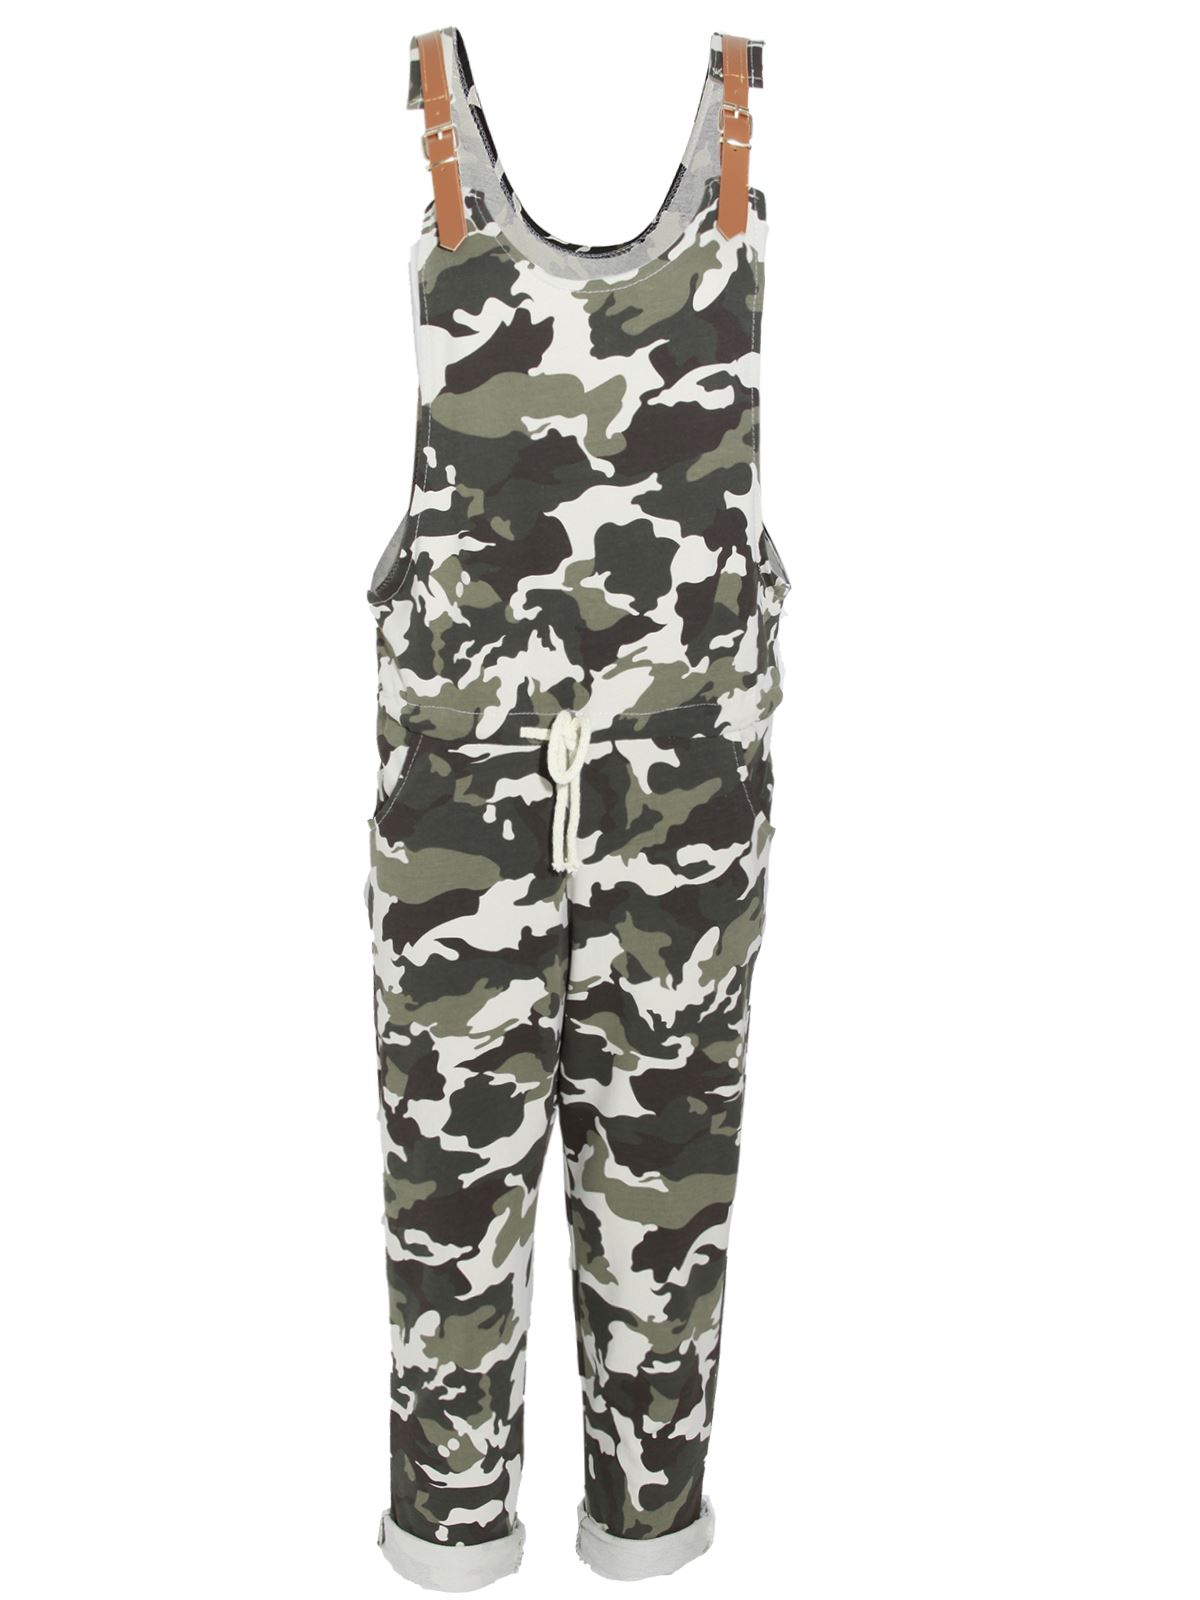 Popular Pink Camo Lounge Pants For Women Comouflage Pajama Pant From King39s